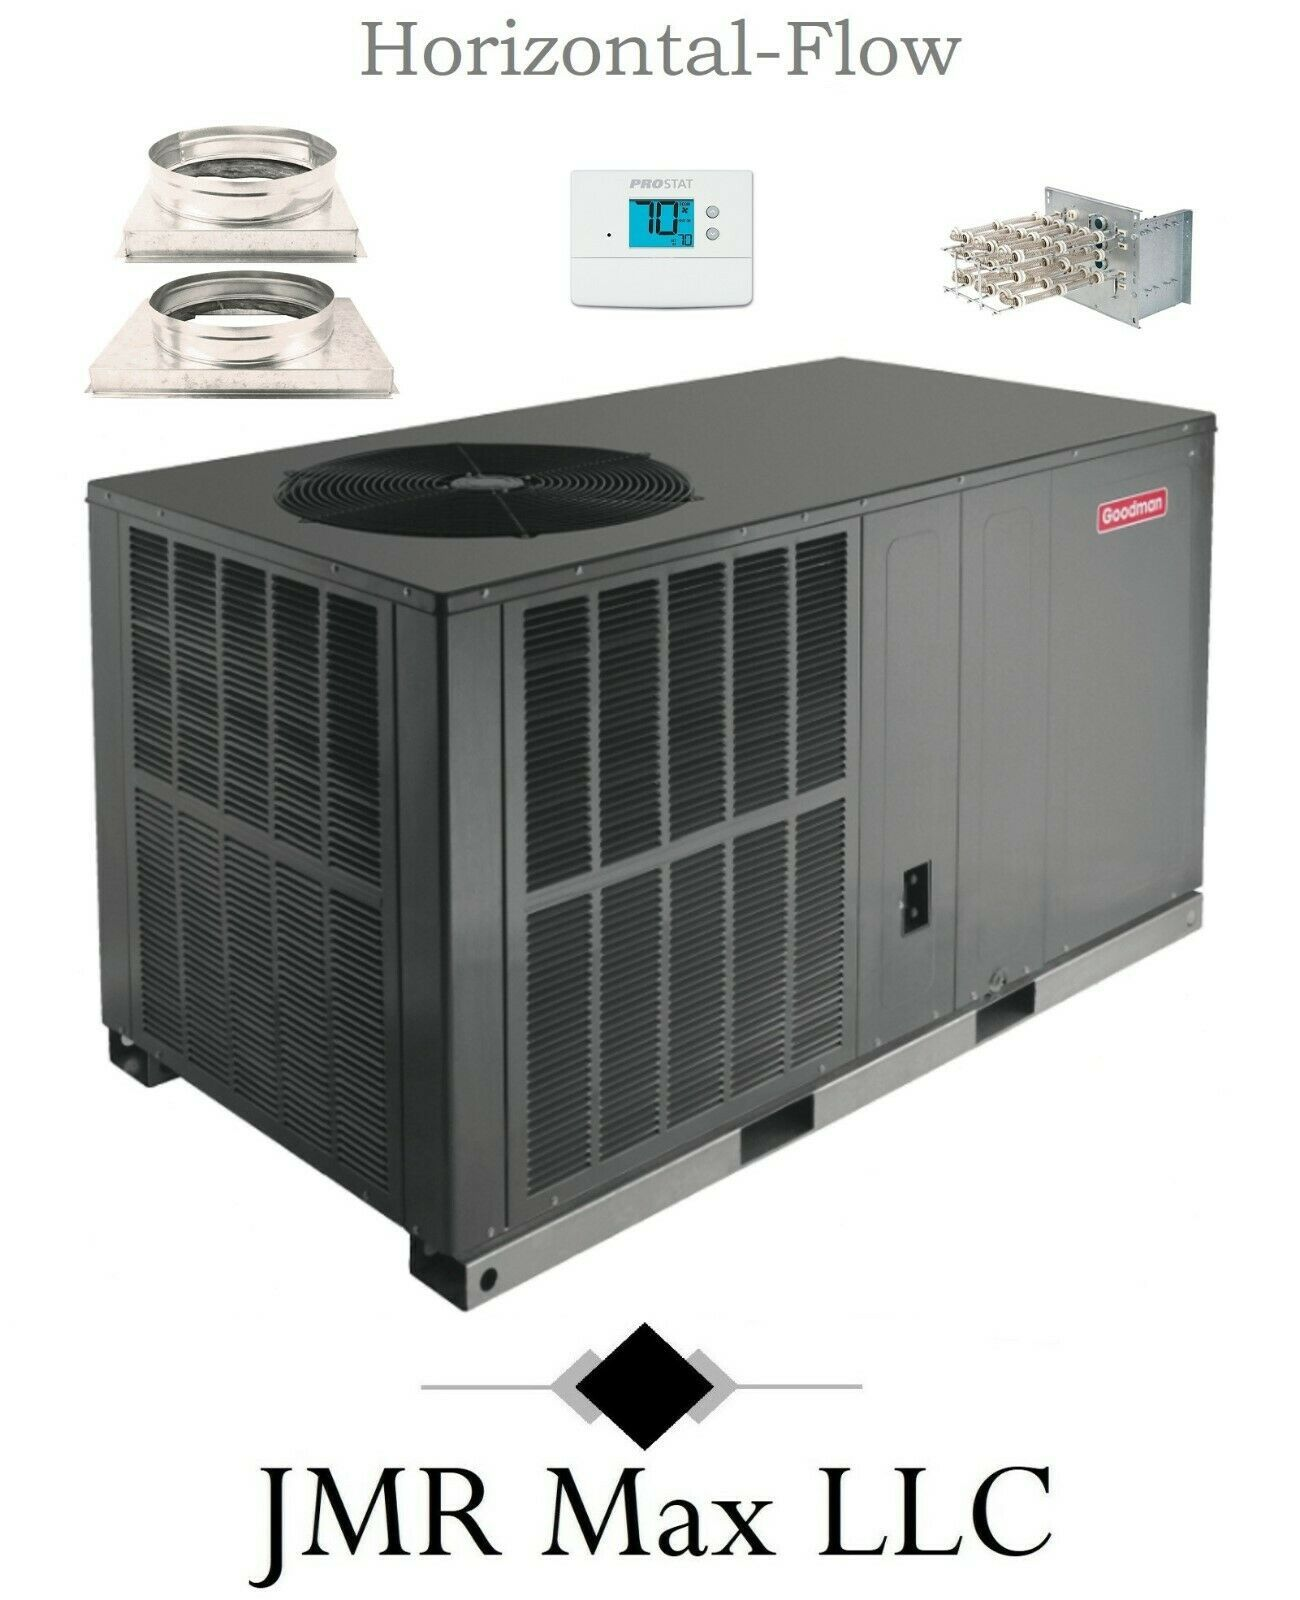 carrier split air conditioner in 2020 Air conditioner